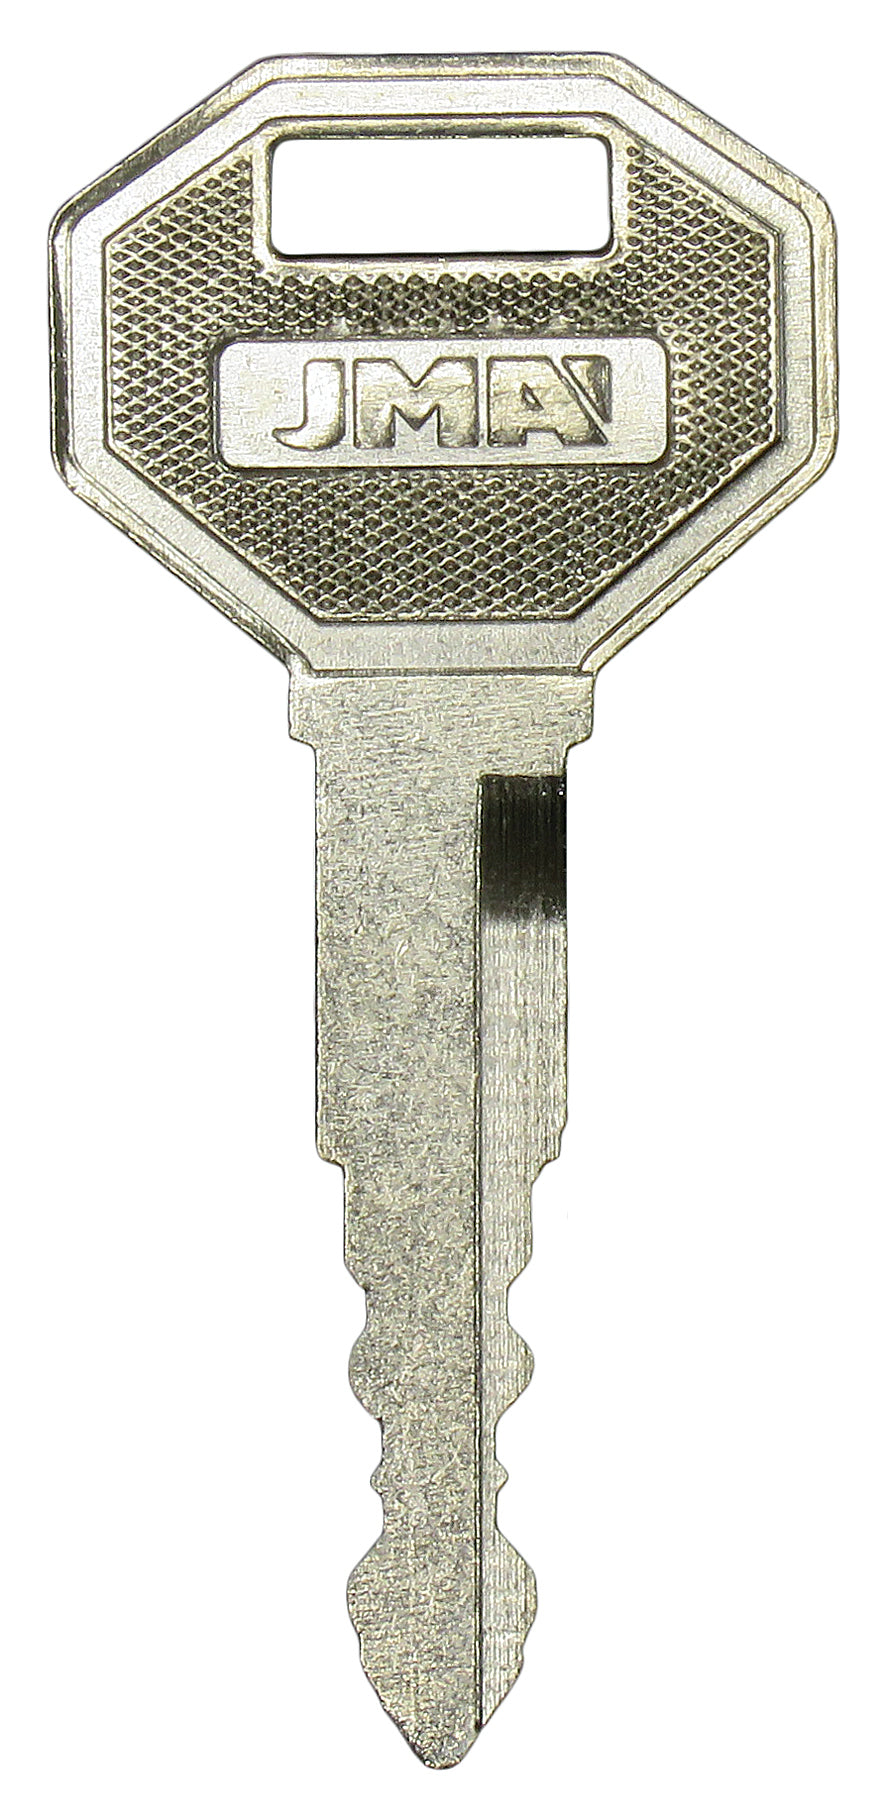 Daewoo/Terex Ignition Key